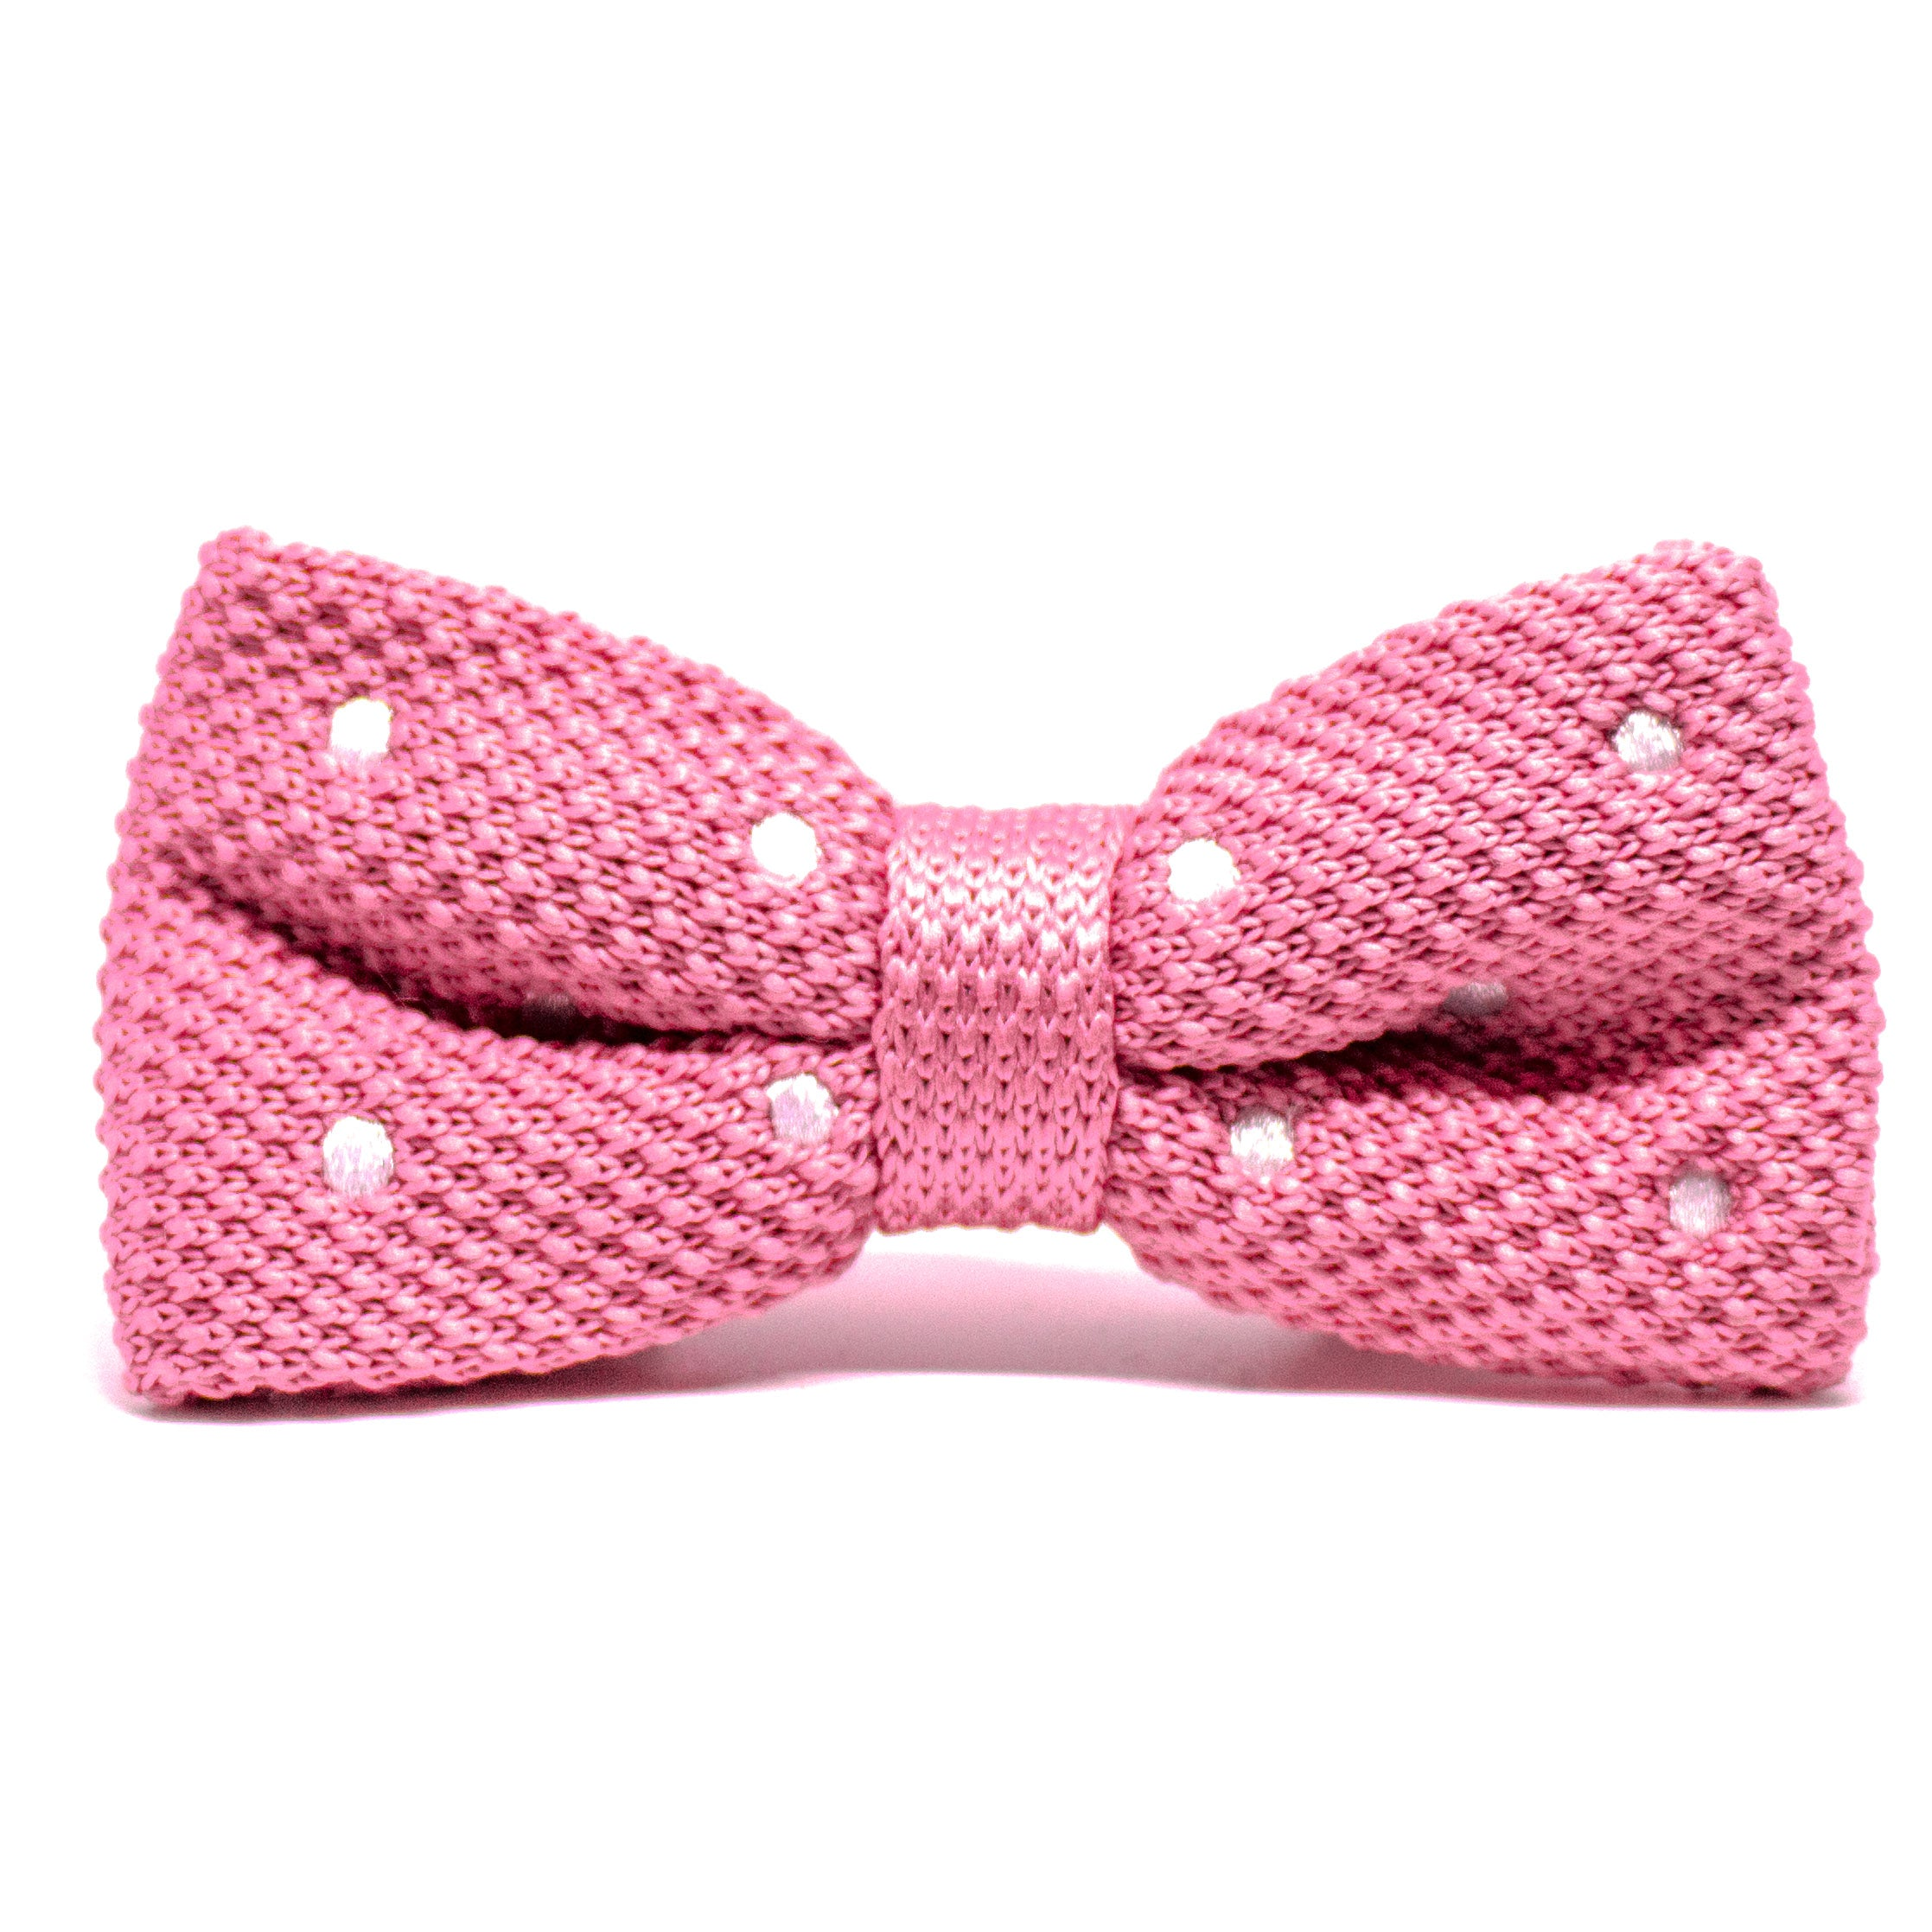 Pink Knit Bow Tie